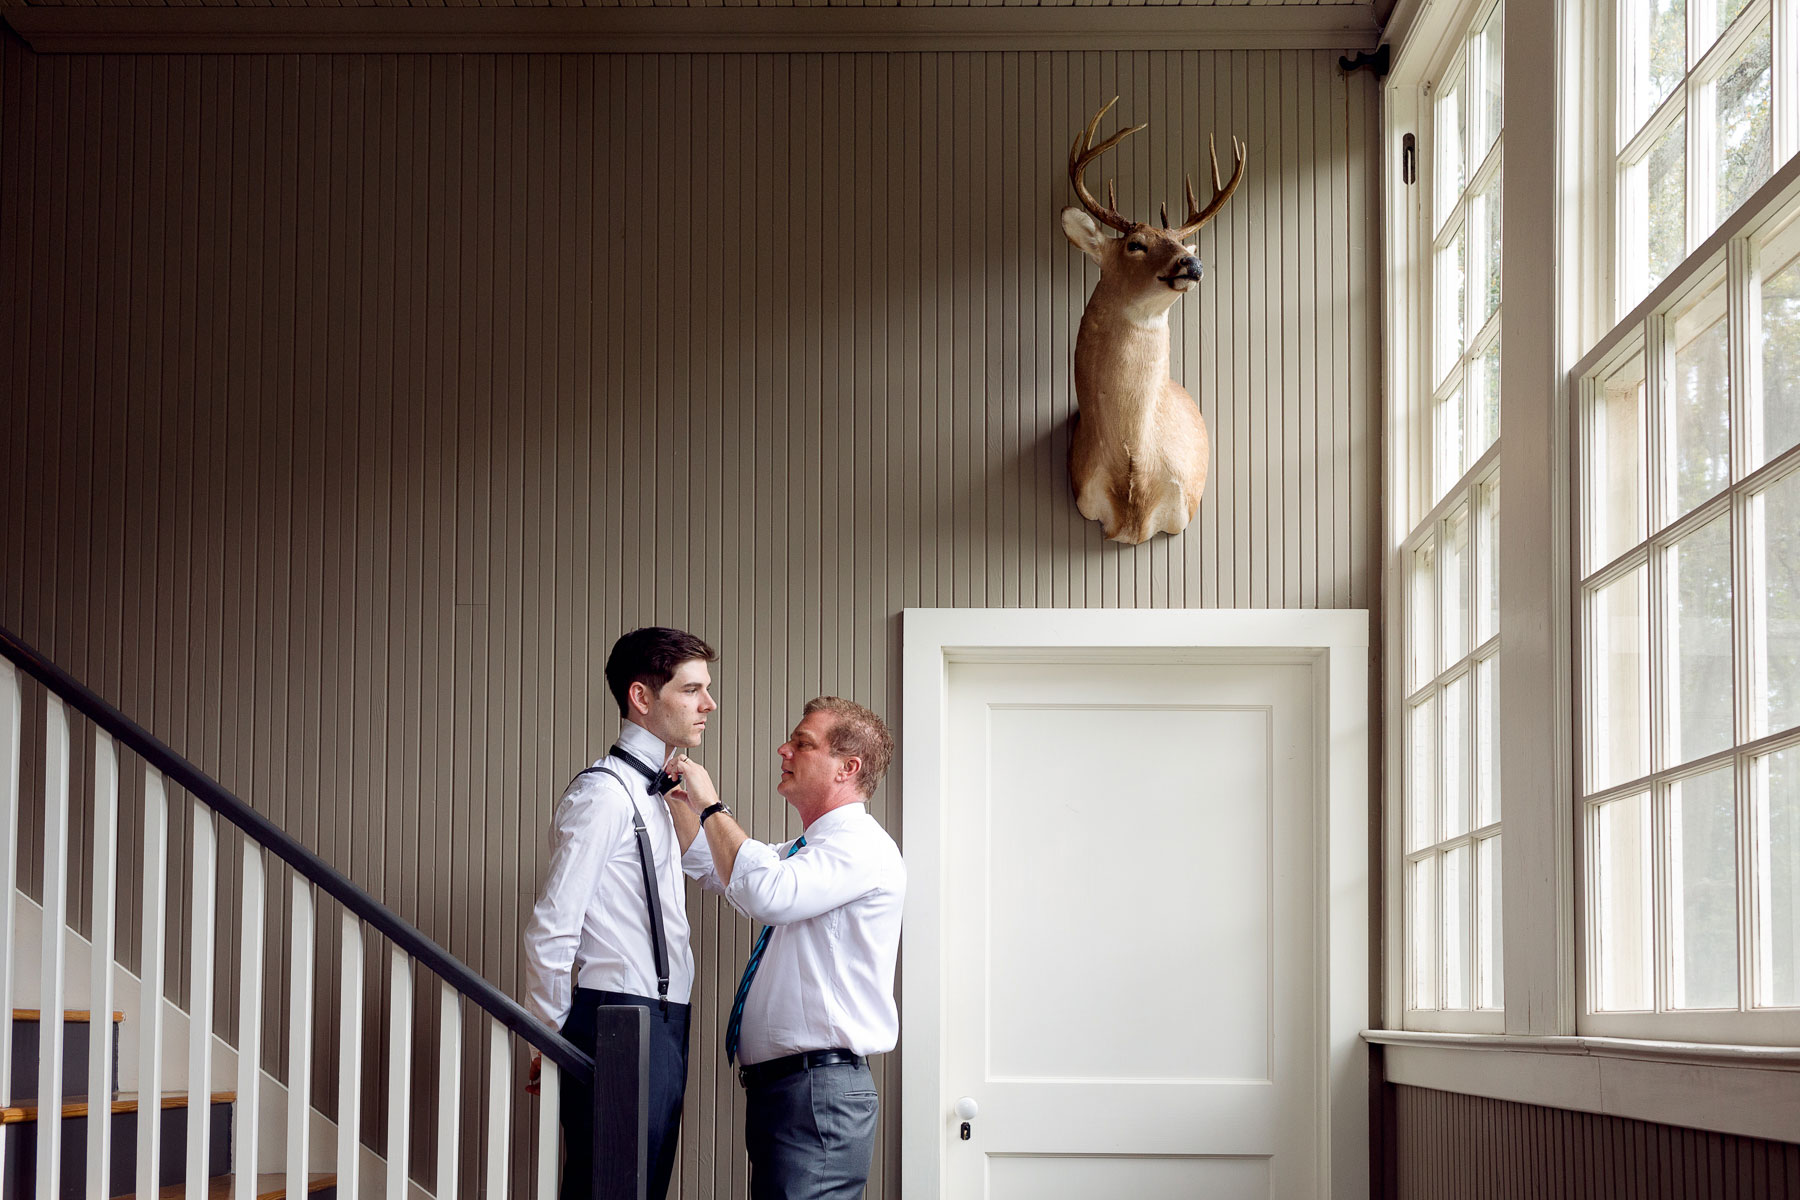 grooms-gets-ready-with-father-on-staircase